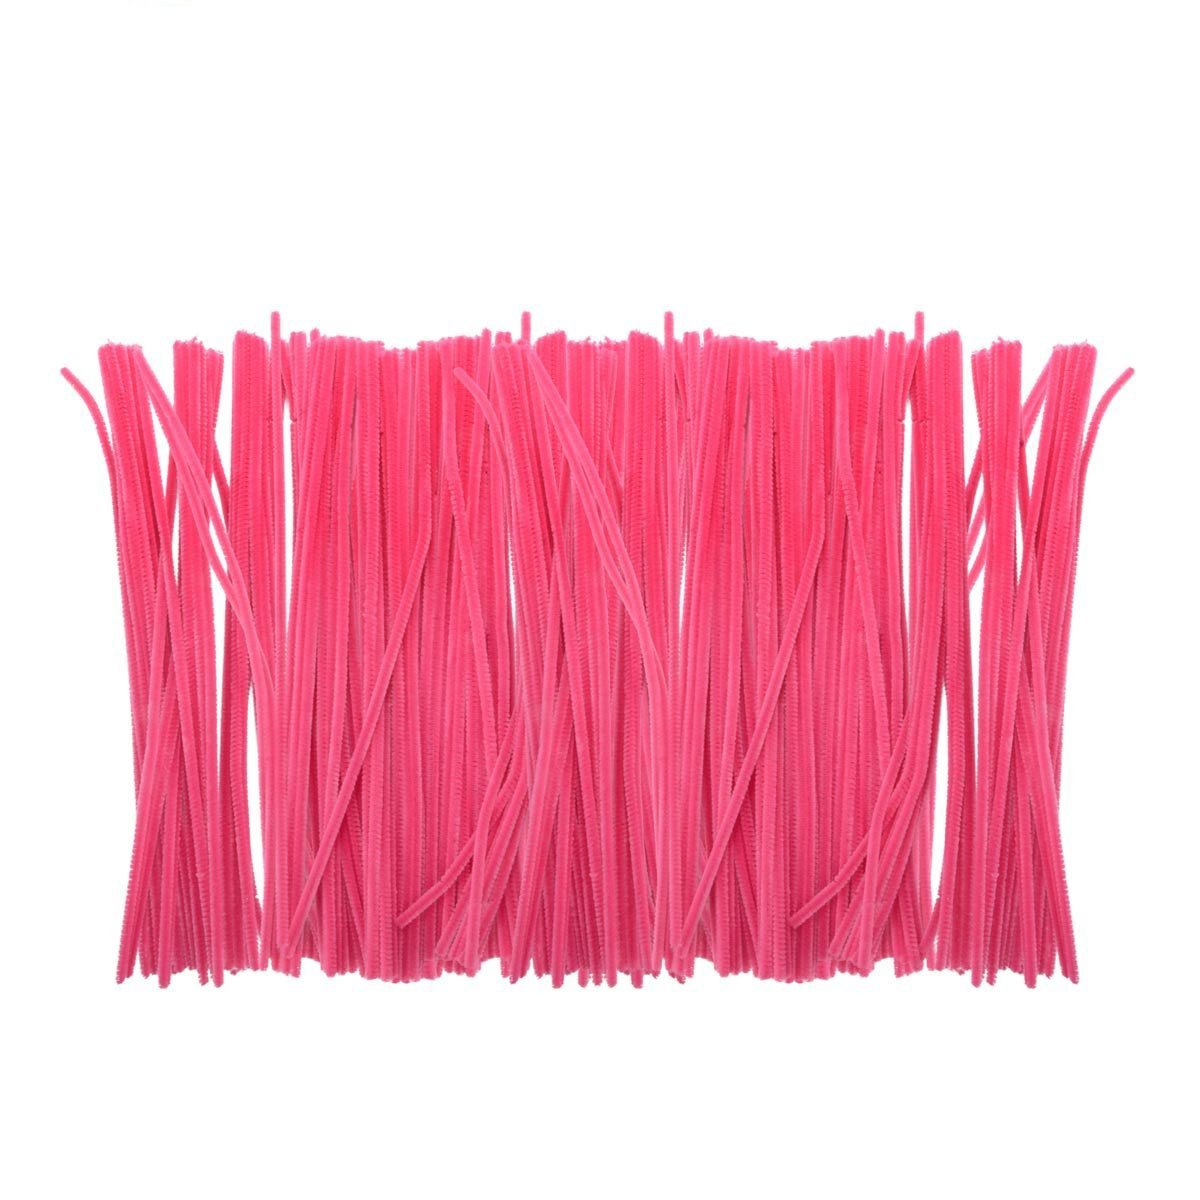 Saim Rose Pink Colored Pipe Cleaners Chenille Stems 12'' for Creative Handmade Arts and Crafts